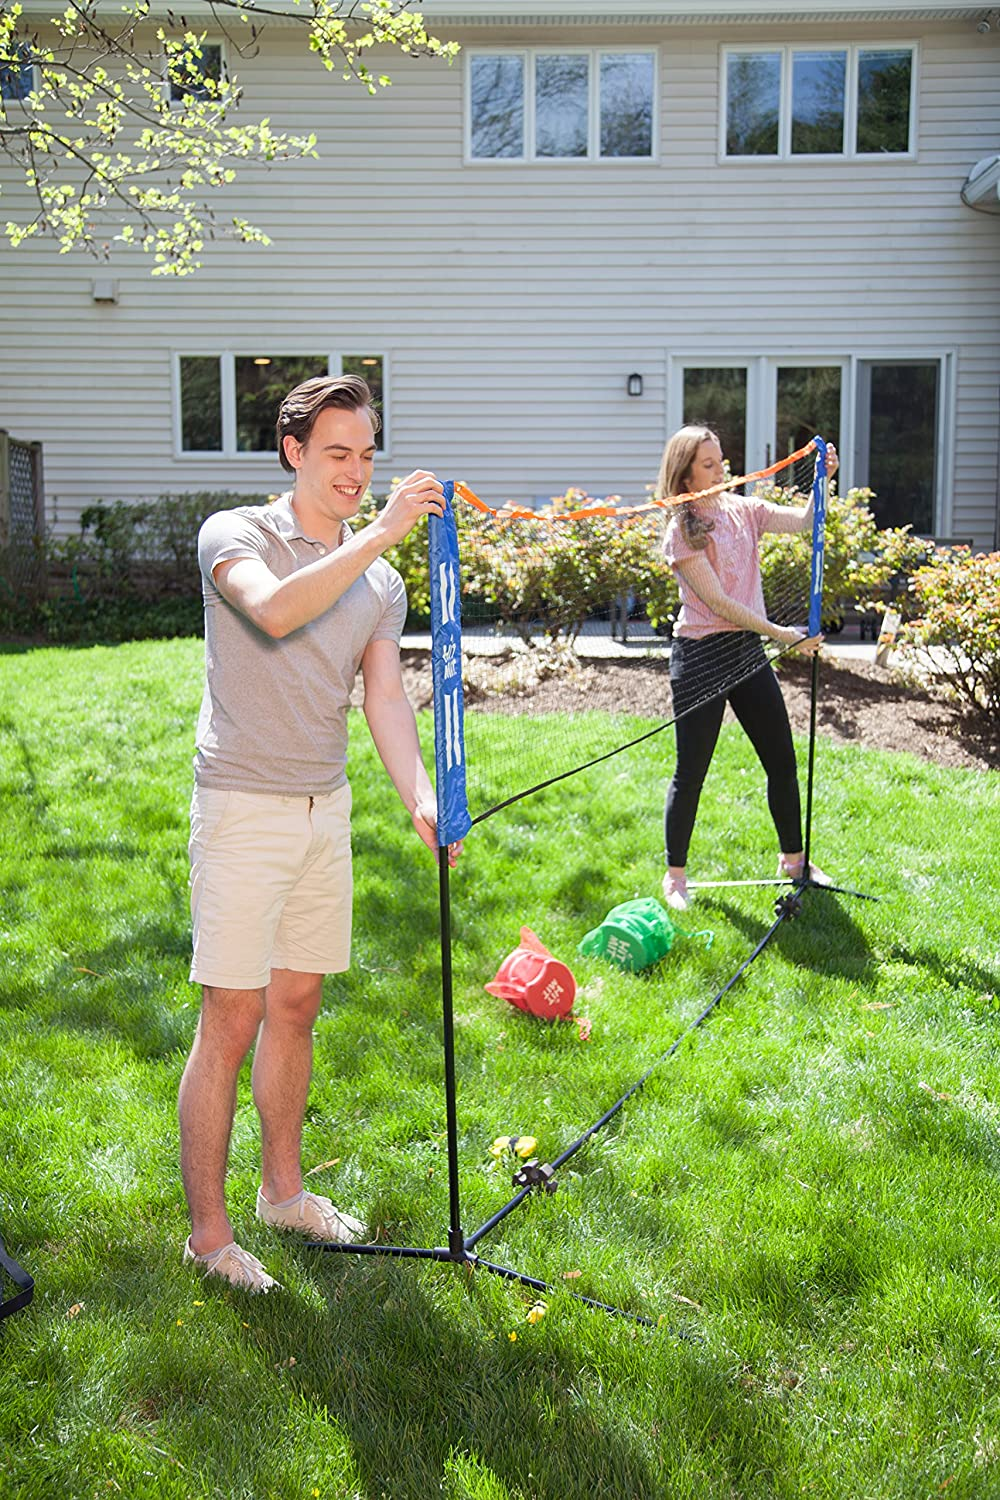 Amazon.com : Hit Mit Multi-Sport Adjustable Indoor/Outdoor Net Set on recreational backyard ideas, soccer backyard ideas, family backyard ideas, beach backyard ideas, outdoor backyard ideas, football backyard ideas, camping backyard ideas, golf backyard ideas, fencing backyard ideas, paintball backyard ideas, home backyard ideas, pool backyard ideas, southern living backyard ideas, sports backyard ideas, playground backyard ideas,